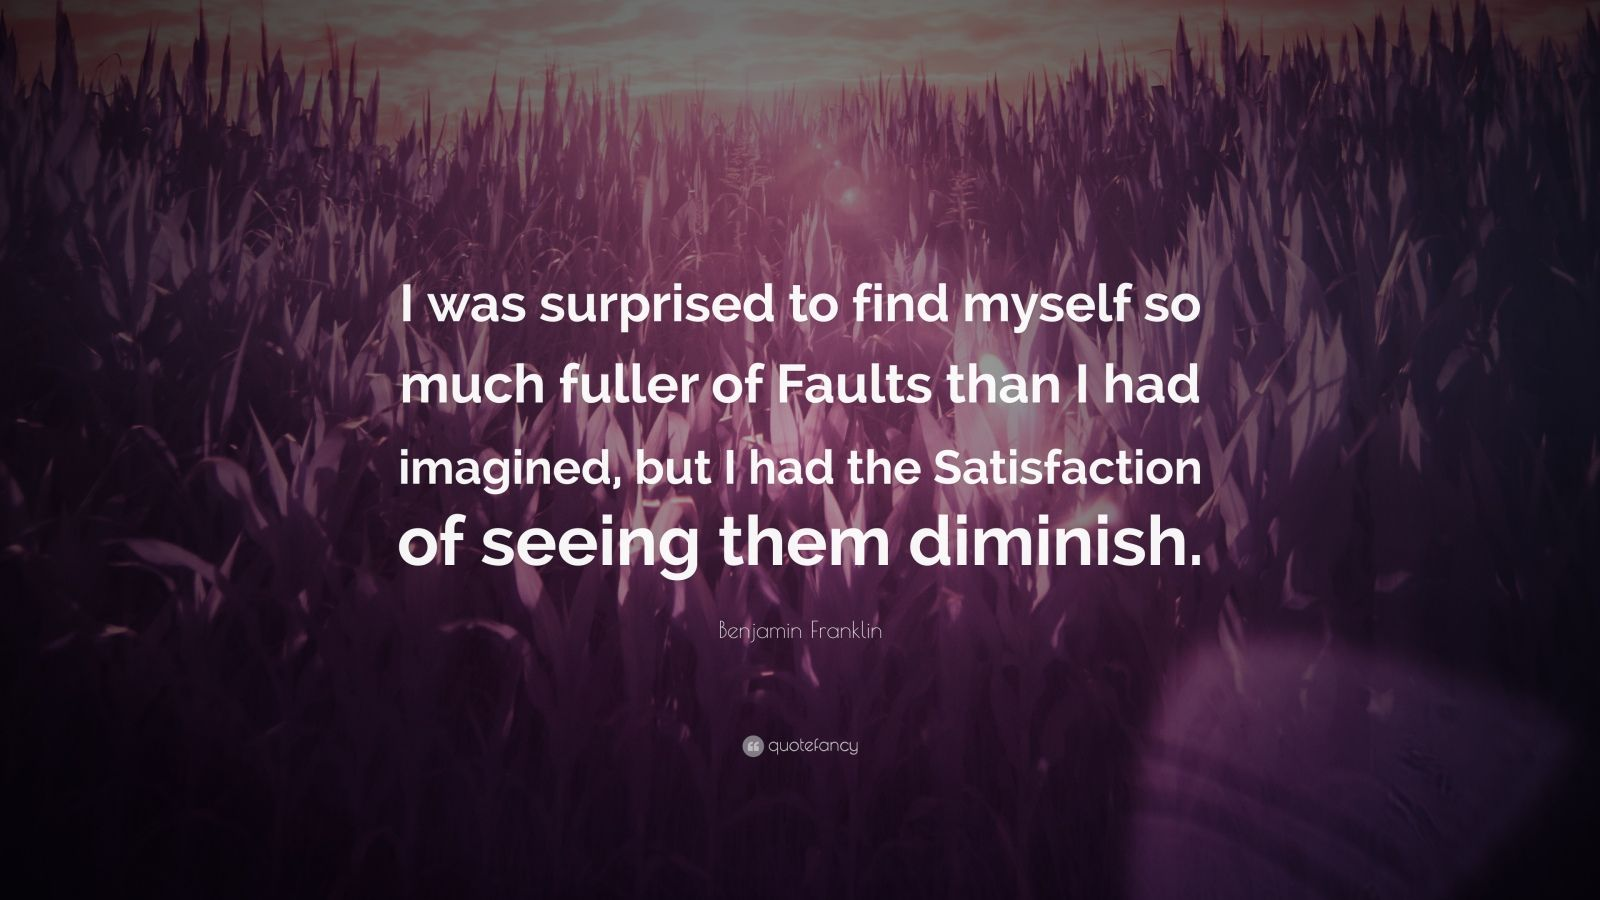 """Benjamin Franklin Quote: """"I was surprised to find myself so much fuller of Faults than I had imagined, but I had the Satisfaction of seeing them diminish."""""""